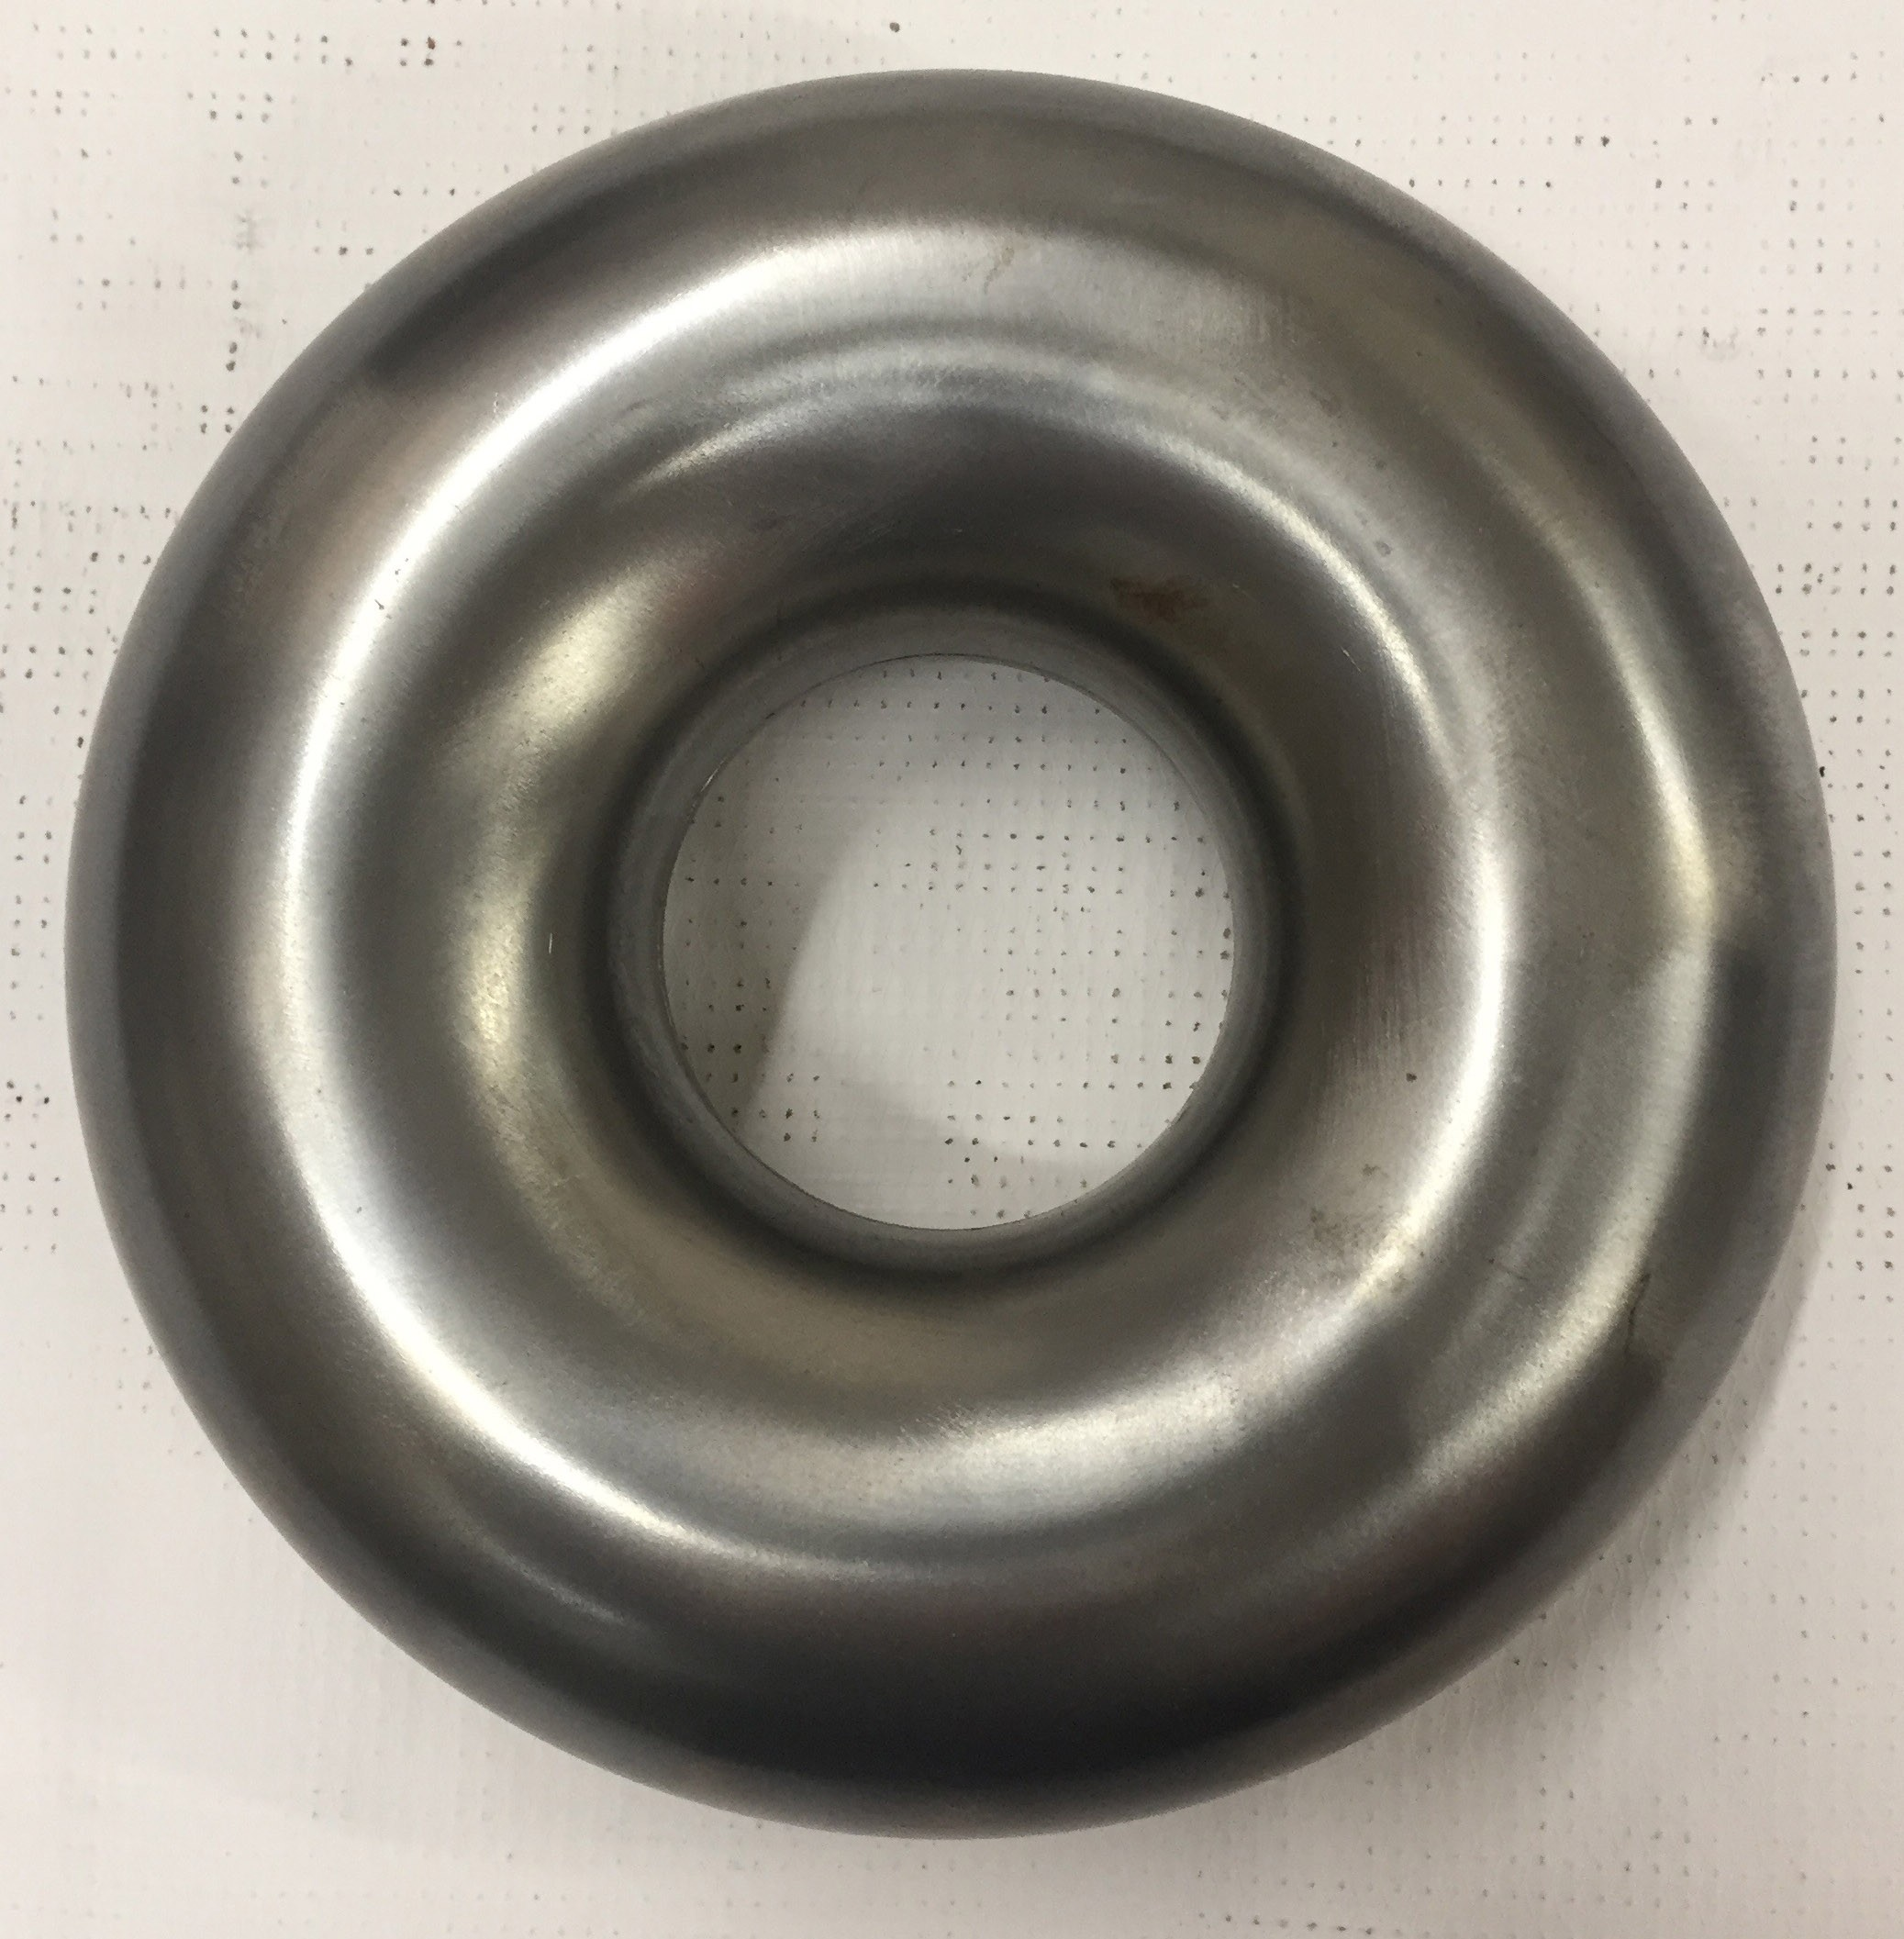 DEEZ Performance Mild Steel Donut 2 1/2""